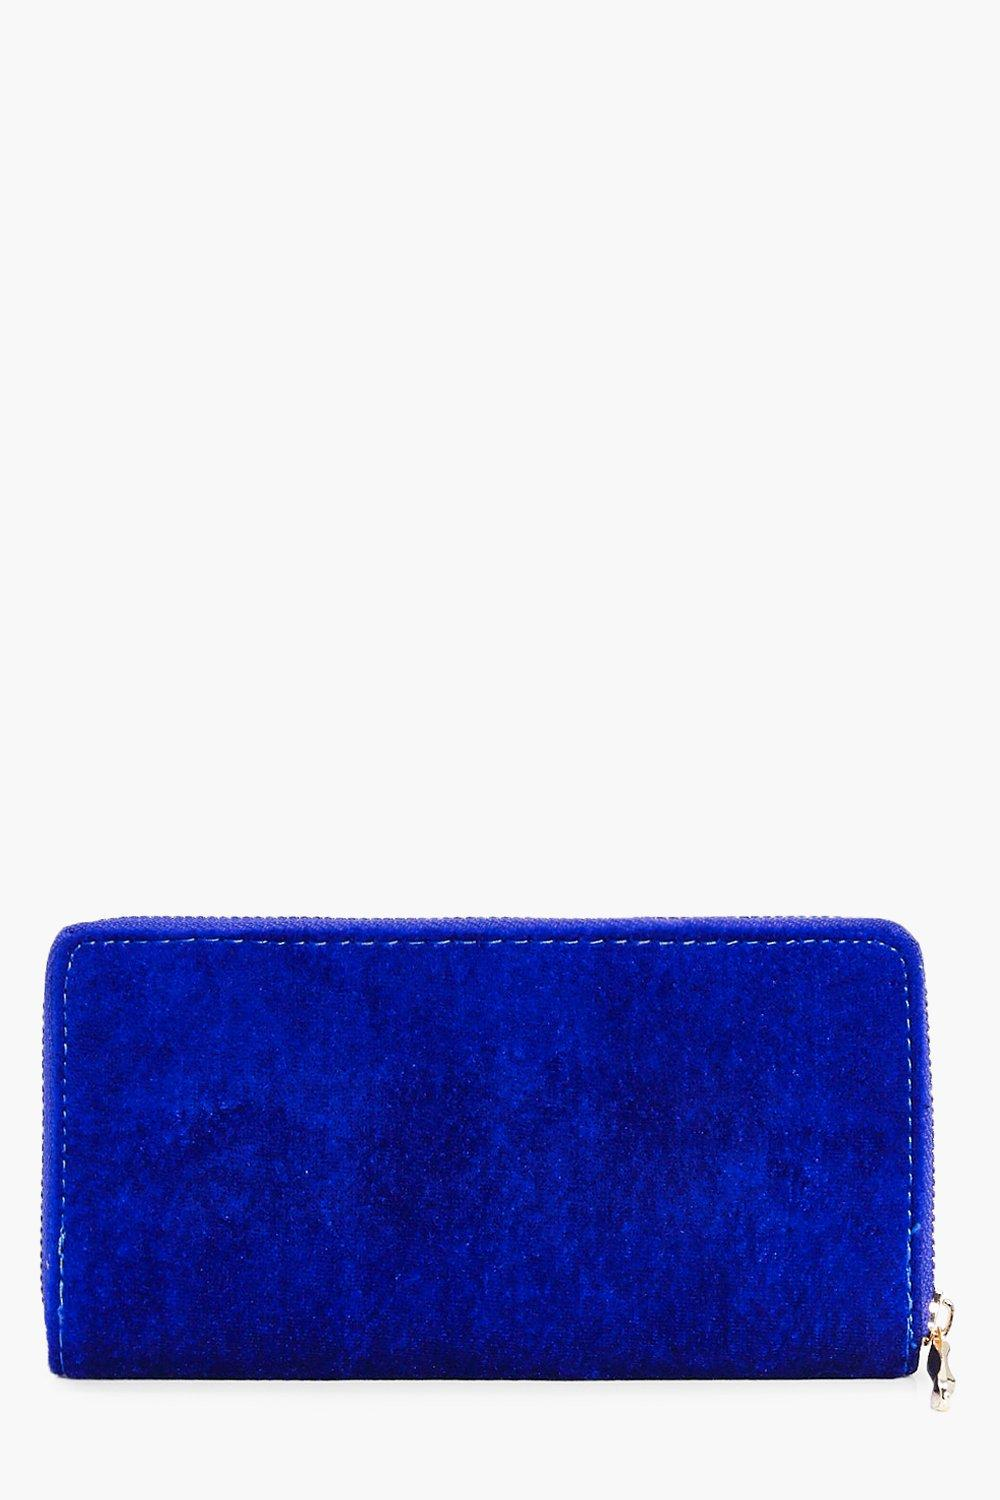 Isobel Velvet Purse